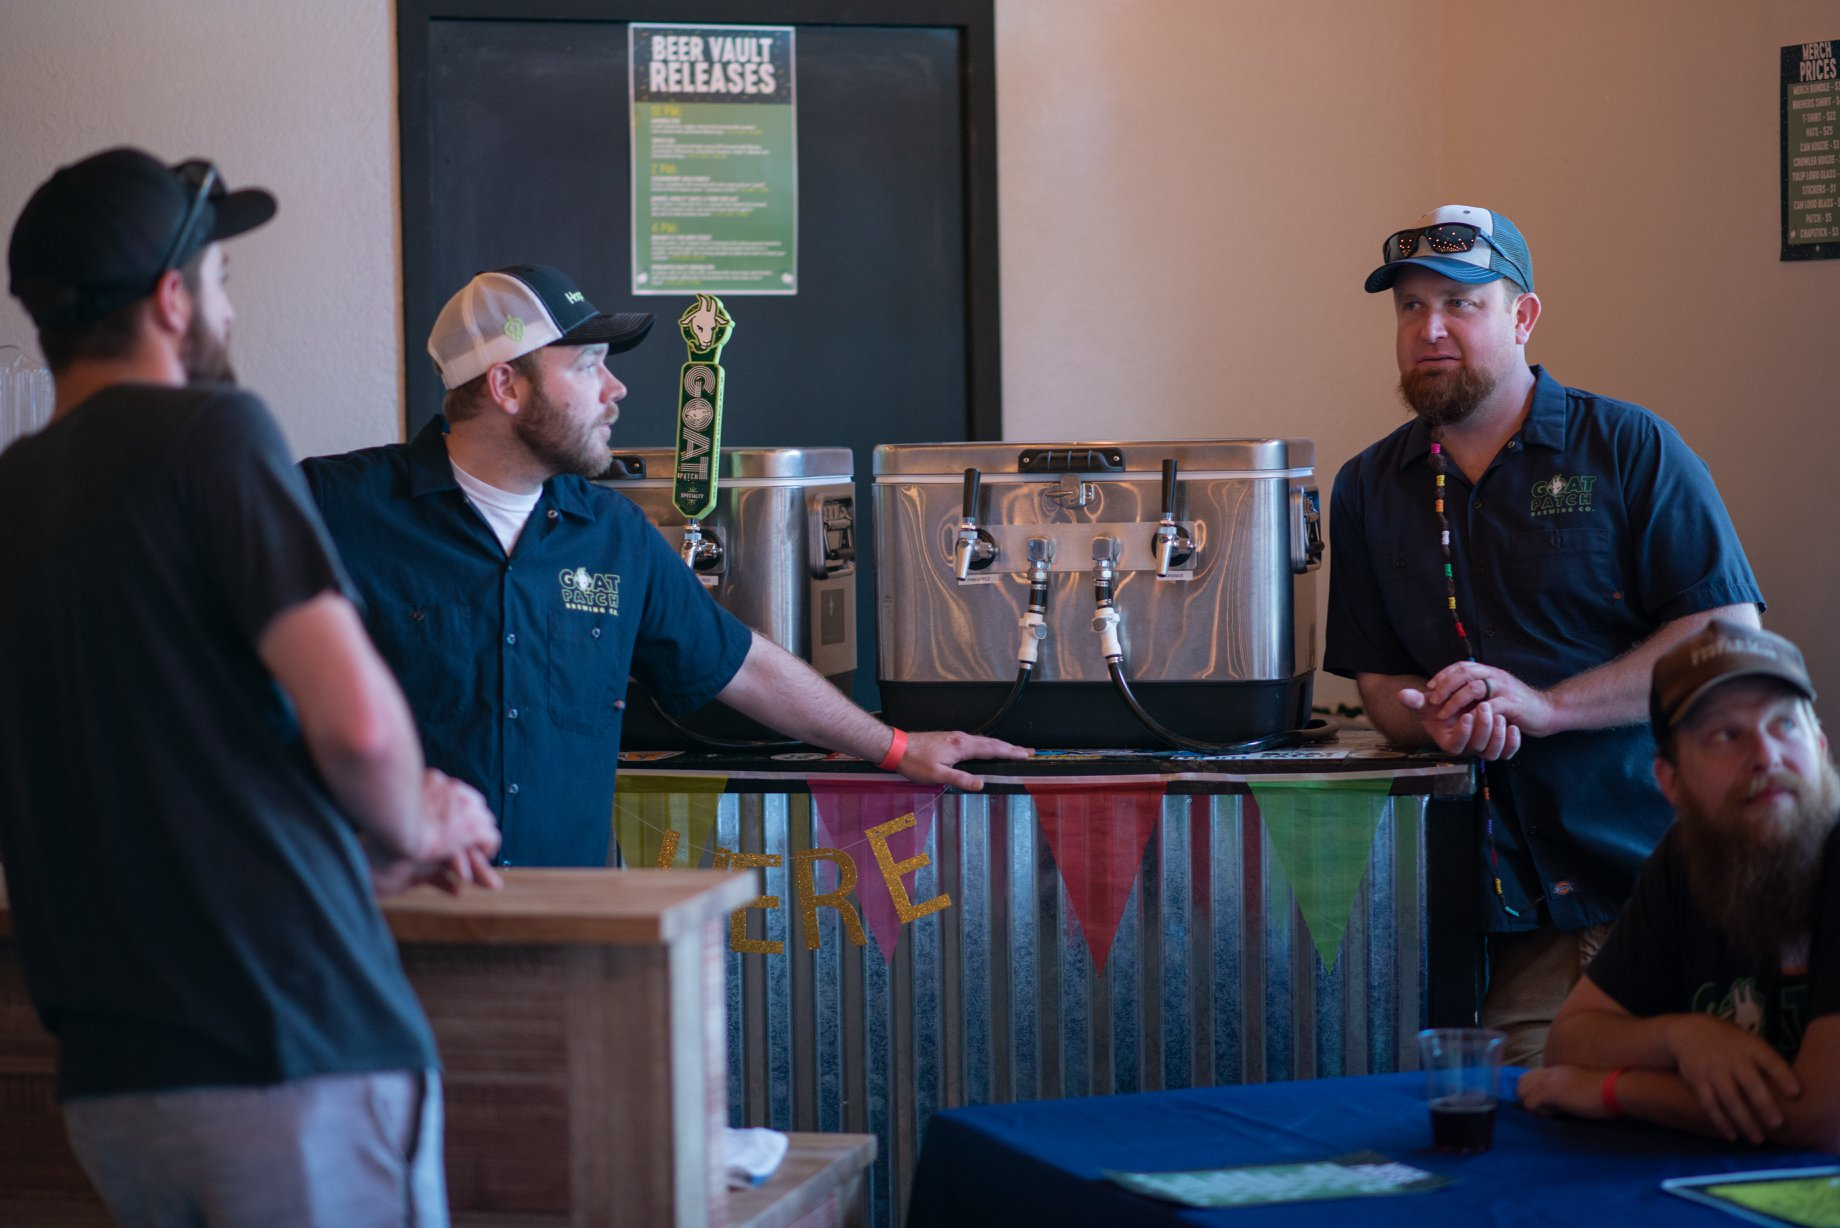 Dylan and Darren were constantly harassed by Ryan from Phantom. Just kidding, they were the gatekeepers for the beer. Photo courtesy Goat Patch Brewing.